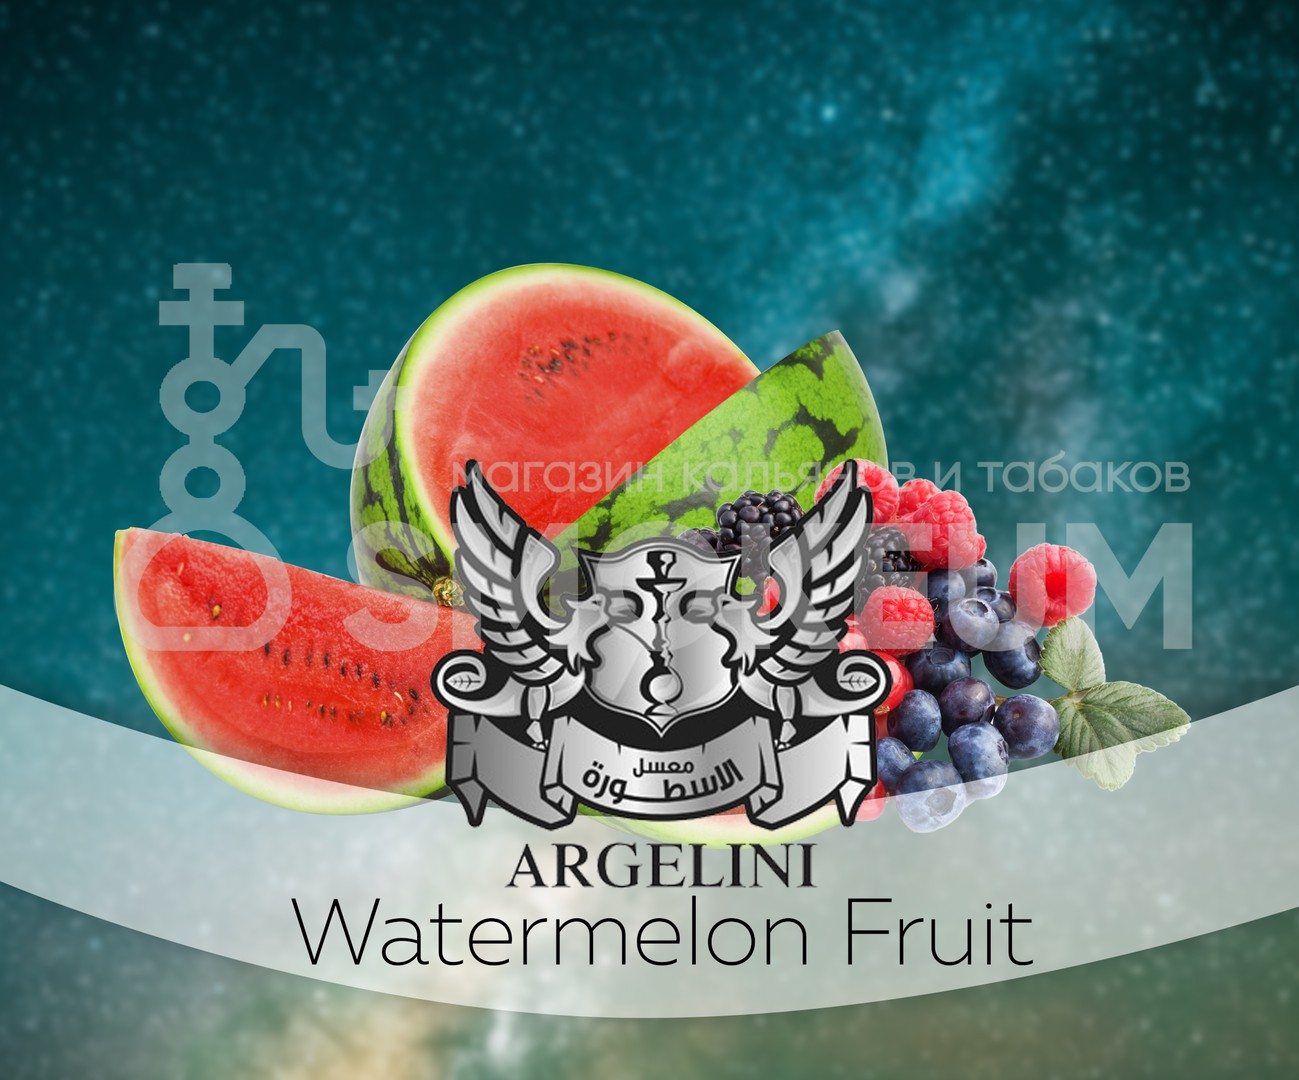 Табак Argelini - Watermelon Fruit (Арбуз и Ягоды) 50 гр